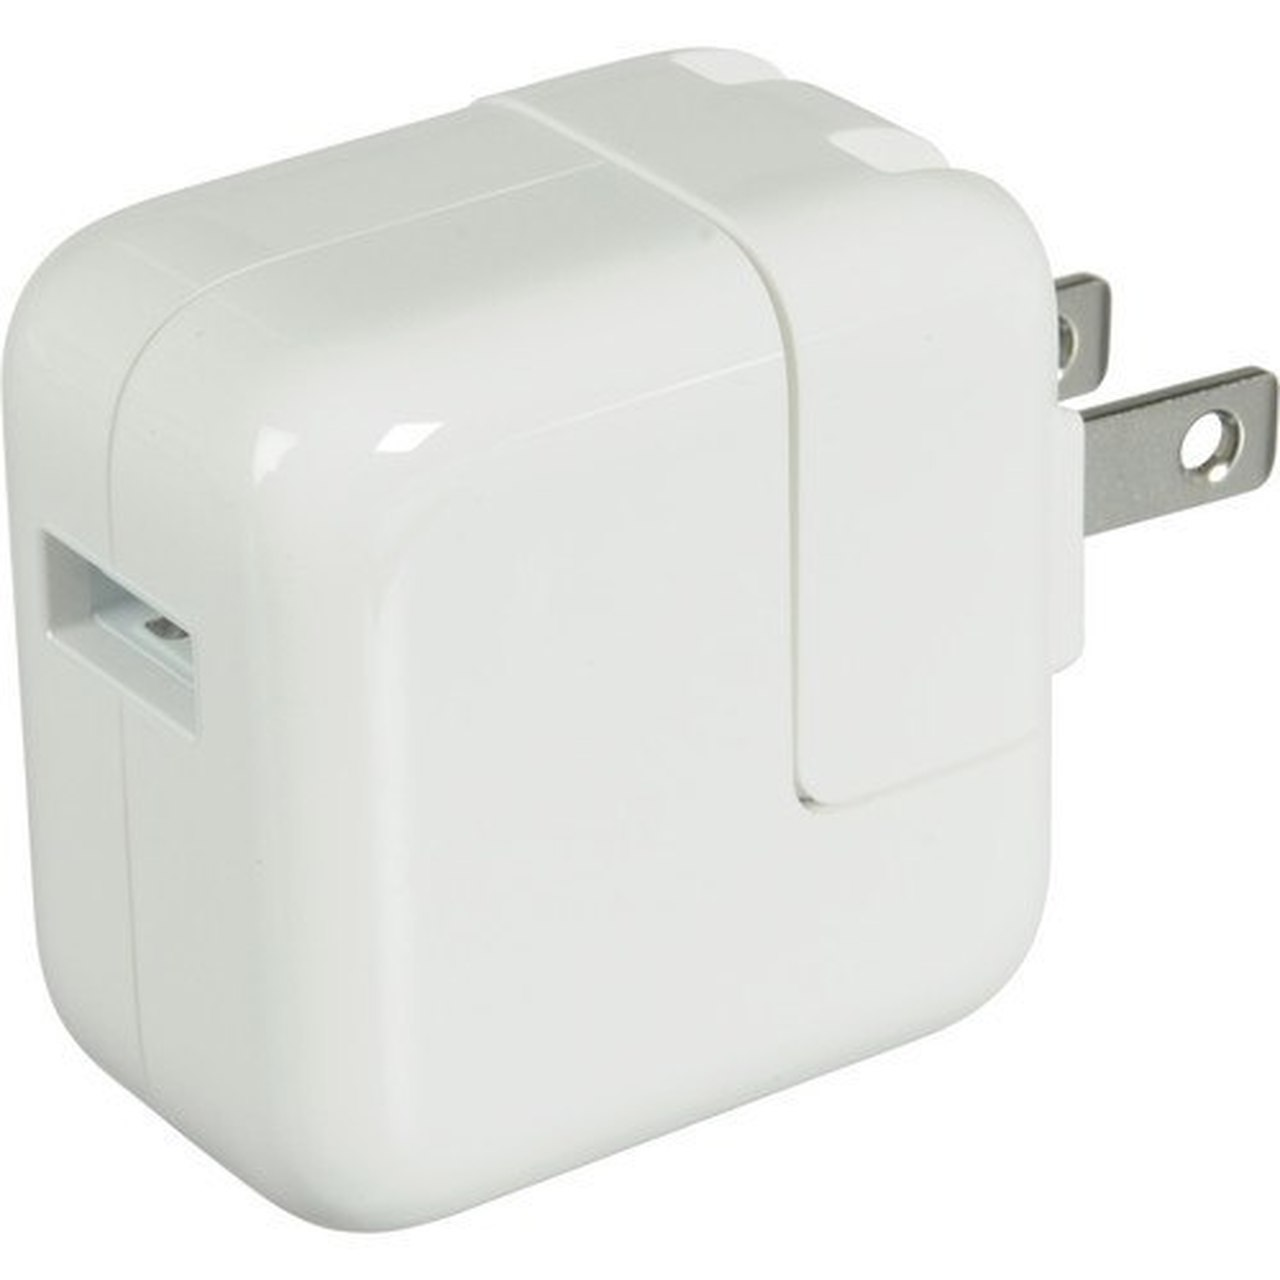 Apple OEM A1401 Wall Charger